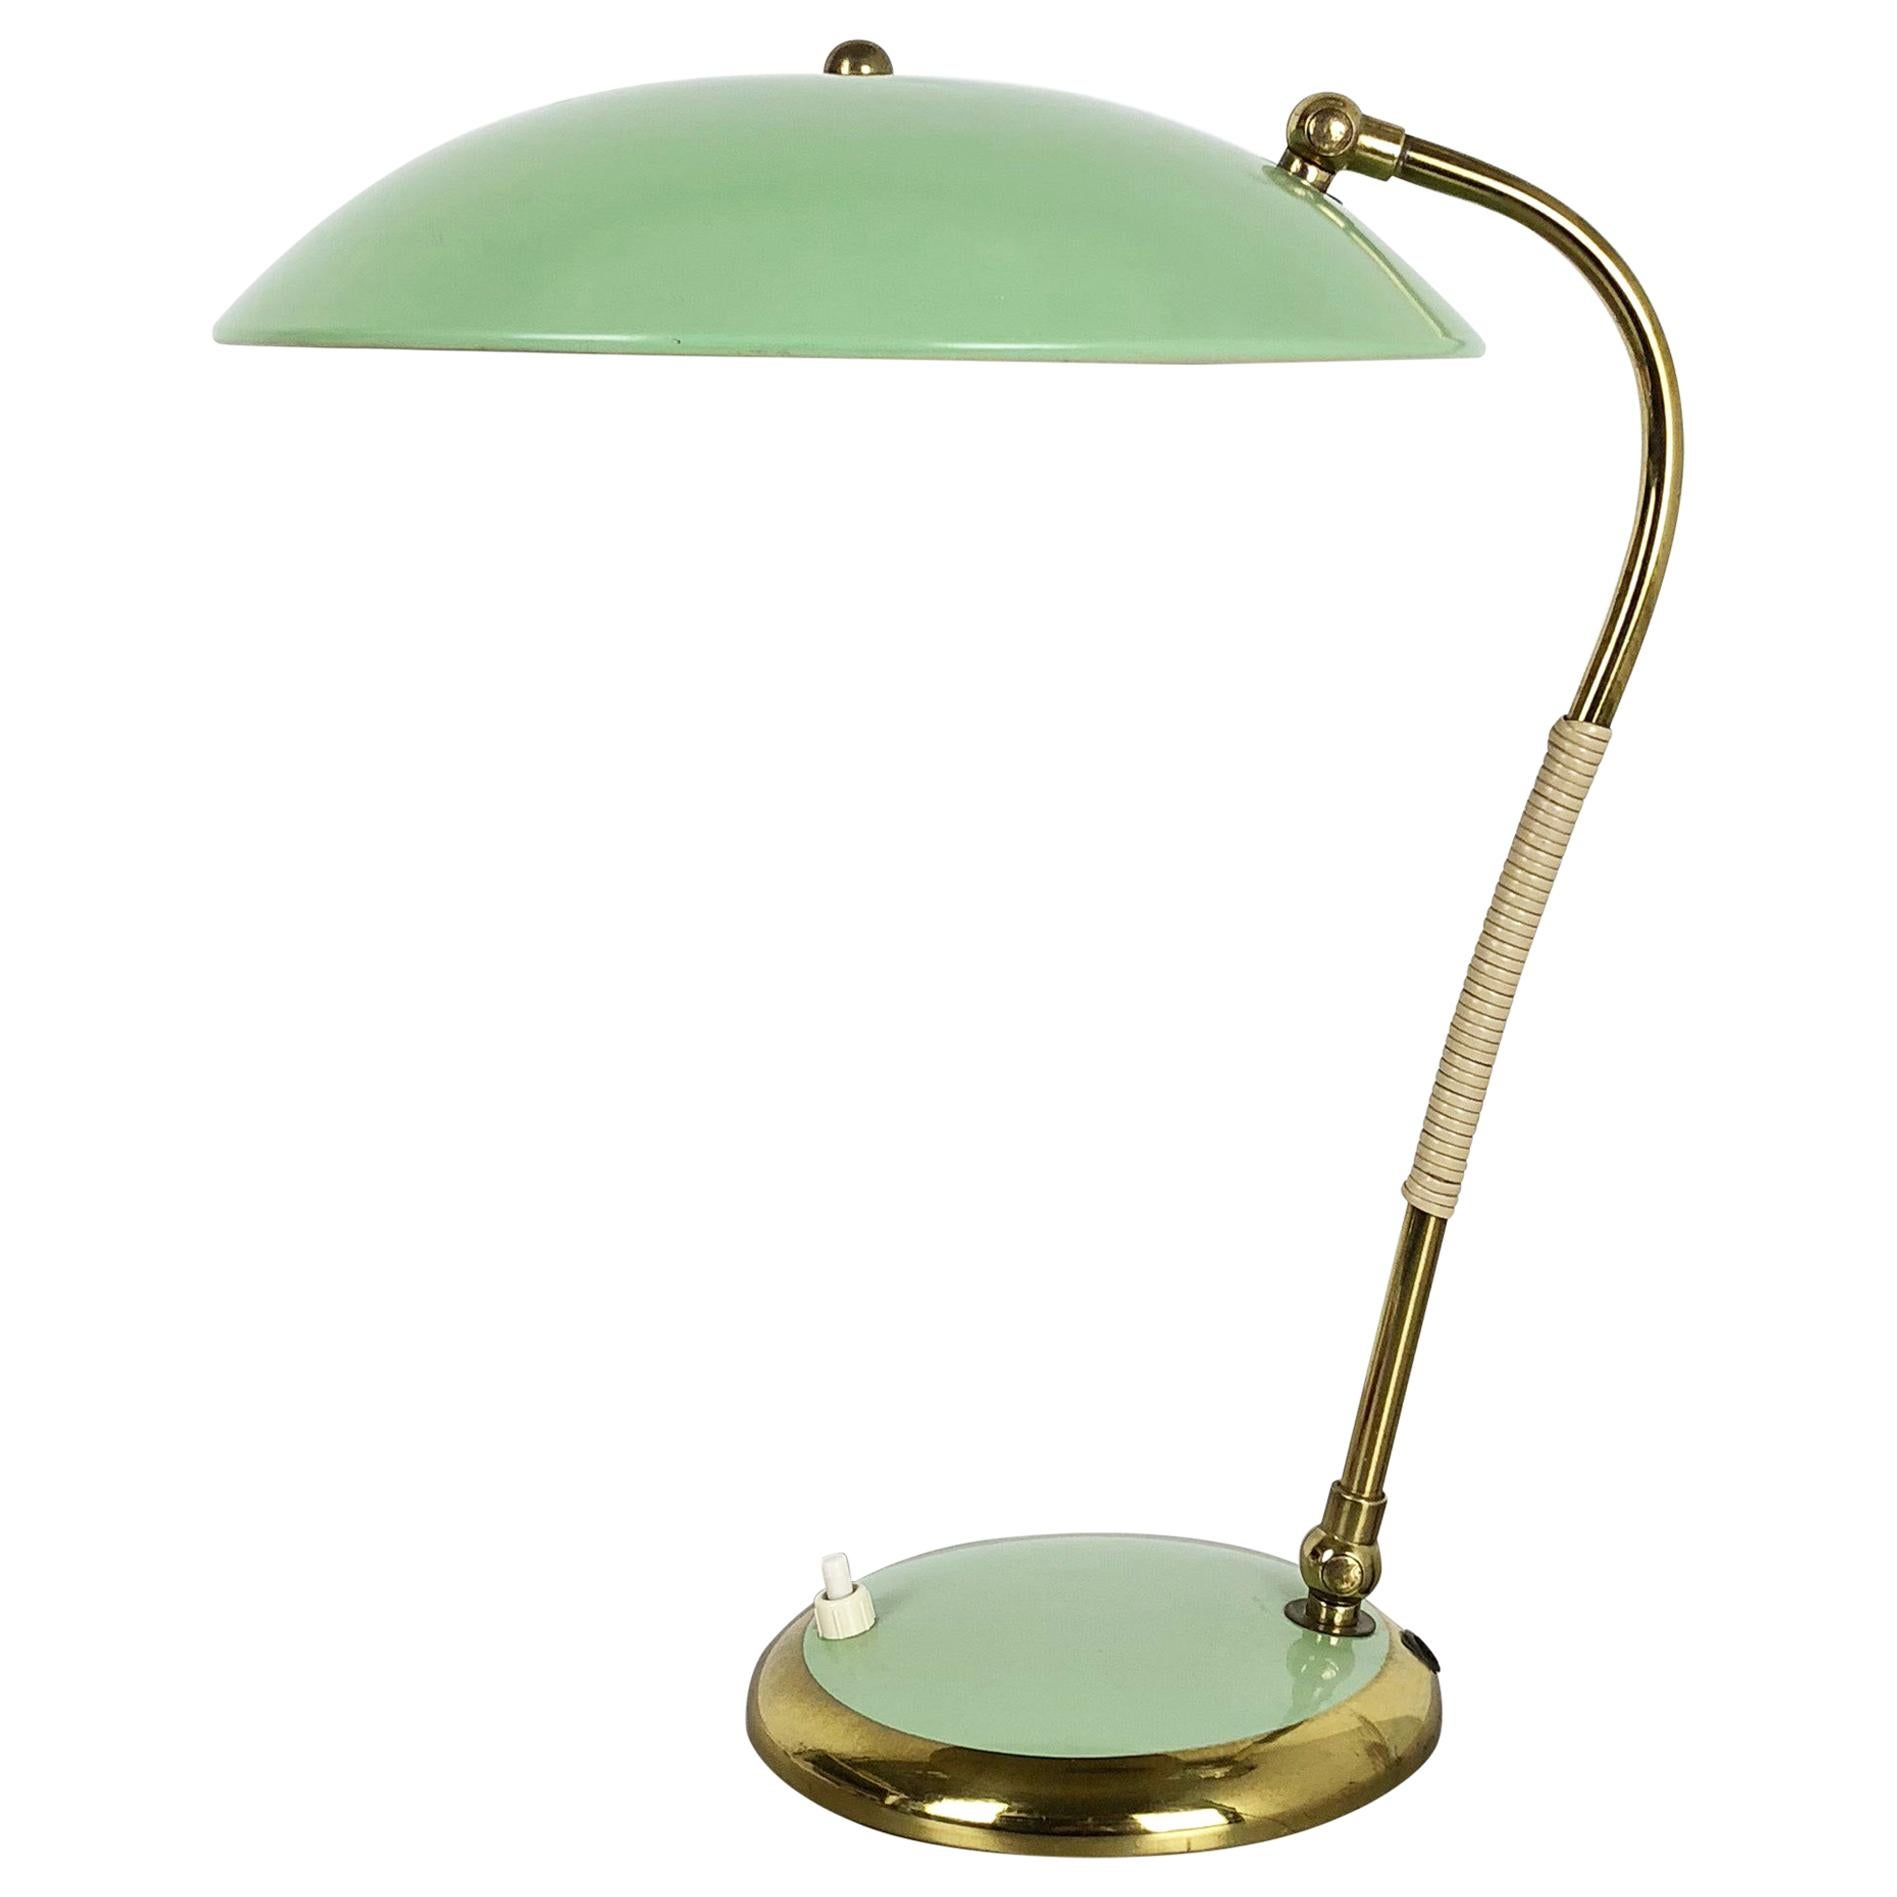 Original Modernist Brass Metal Table Light Made by Helo Lights, Germany, 1960s